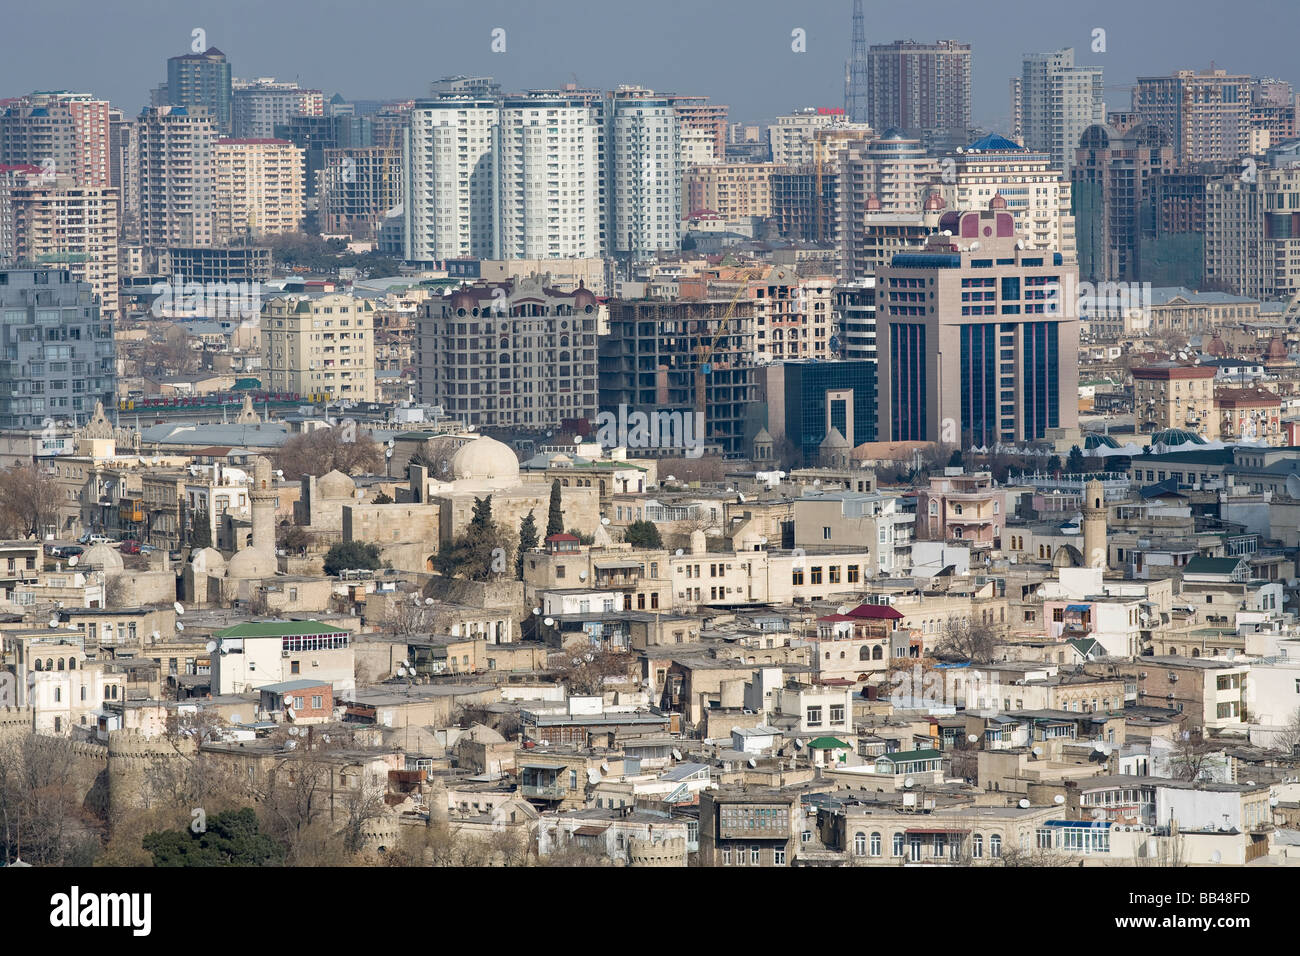 Overview of Baku, Azerbaijan. - Stock Image